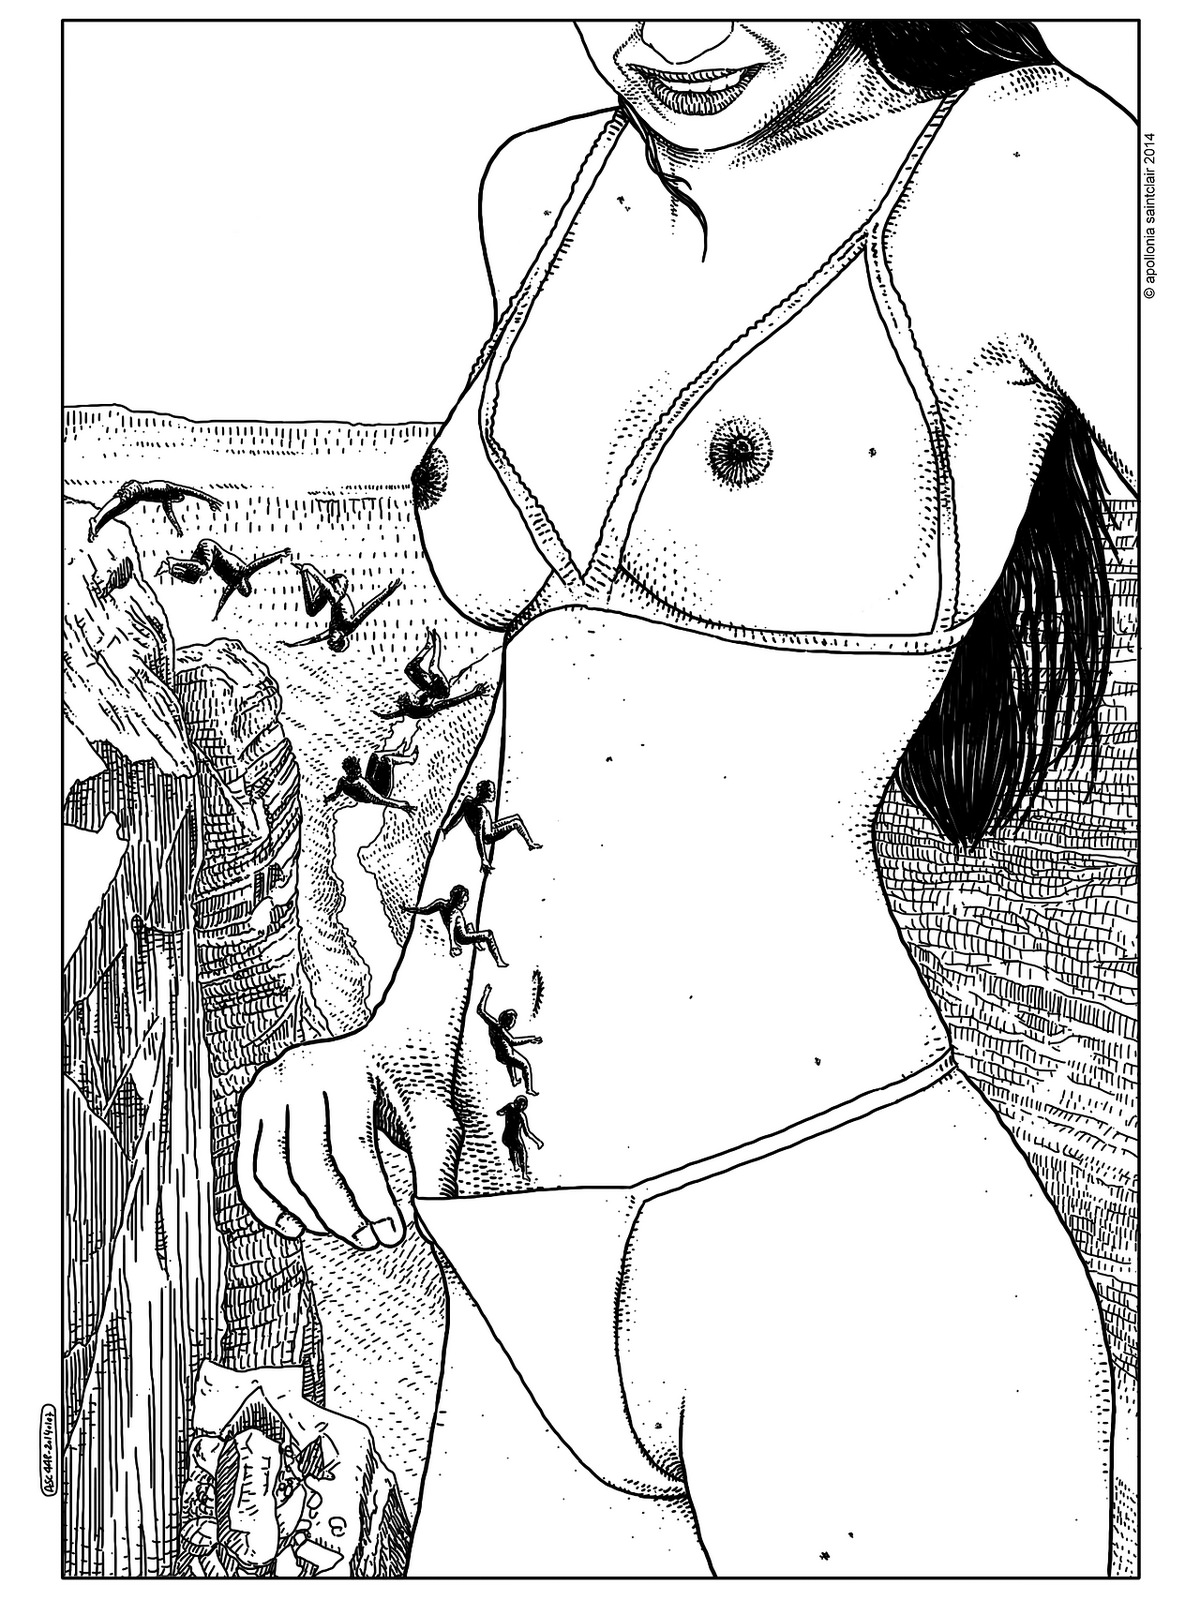 Apollonia Saintclair arte provocativo erotico 22